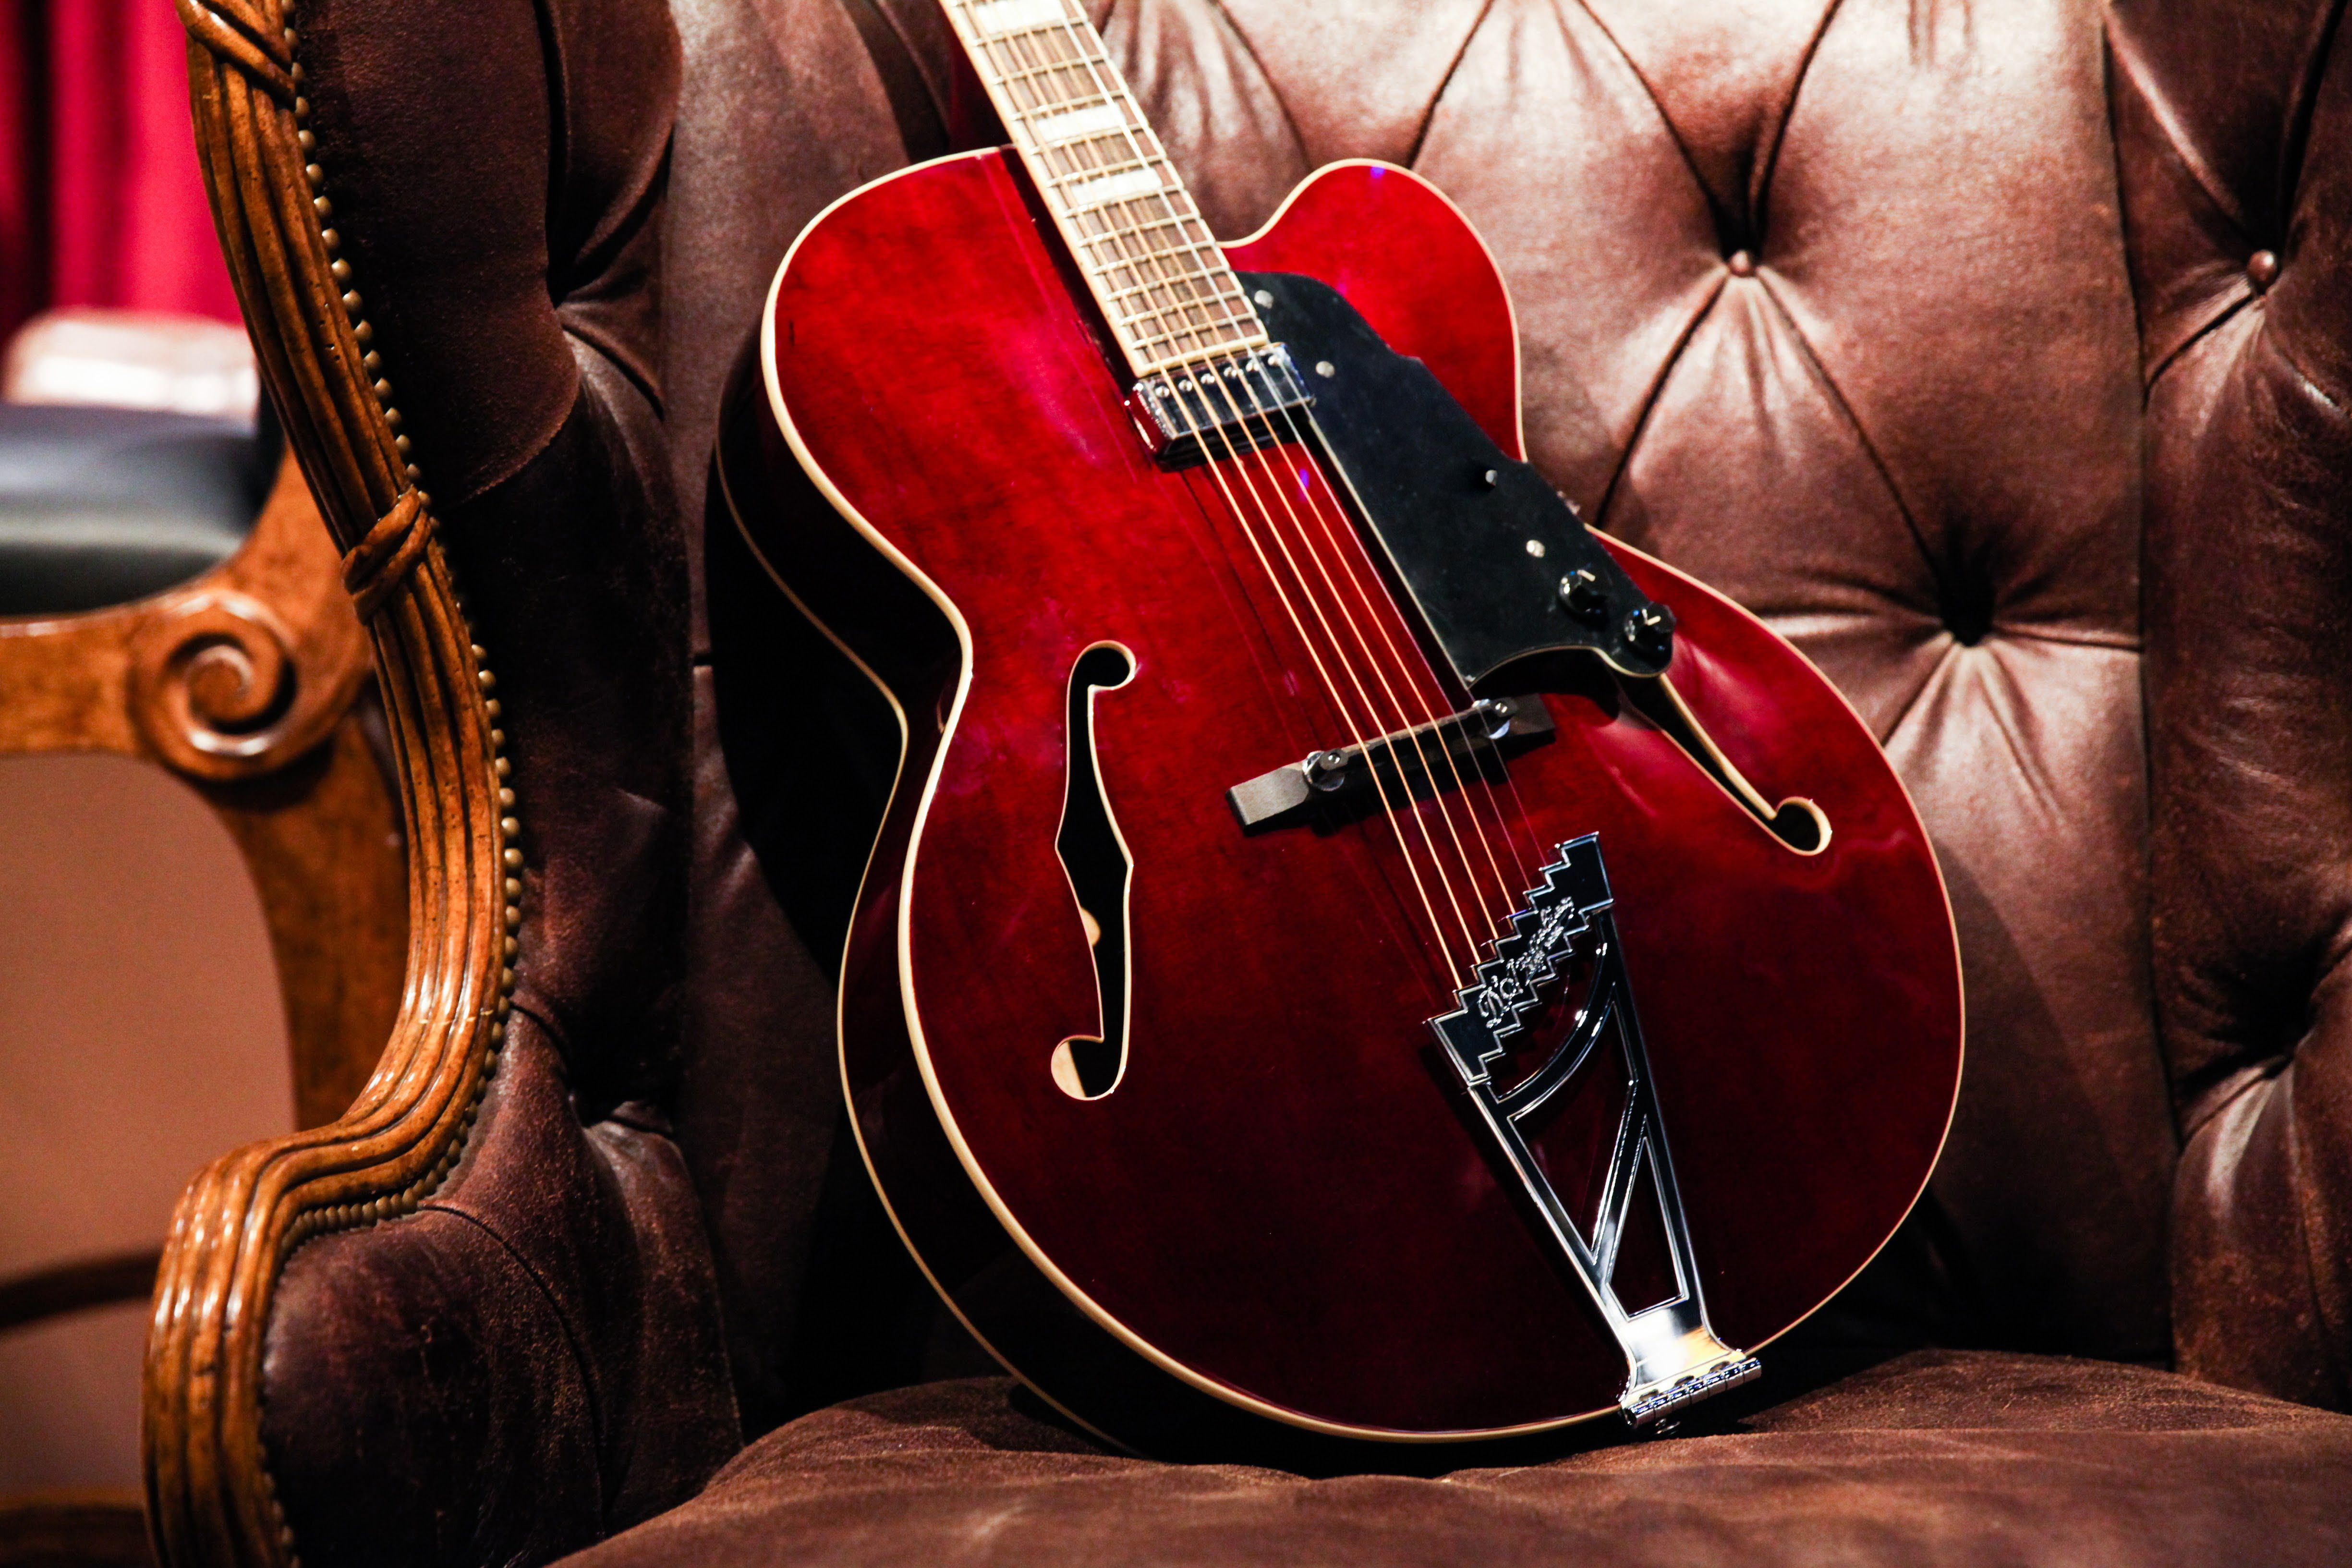 D Angelico Premier Series Exl 1 Hollowbody Electric Guitar With Stairstep Tailpiece Guitar Electric Guitar Supro